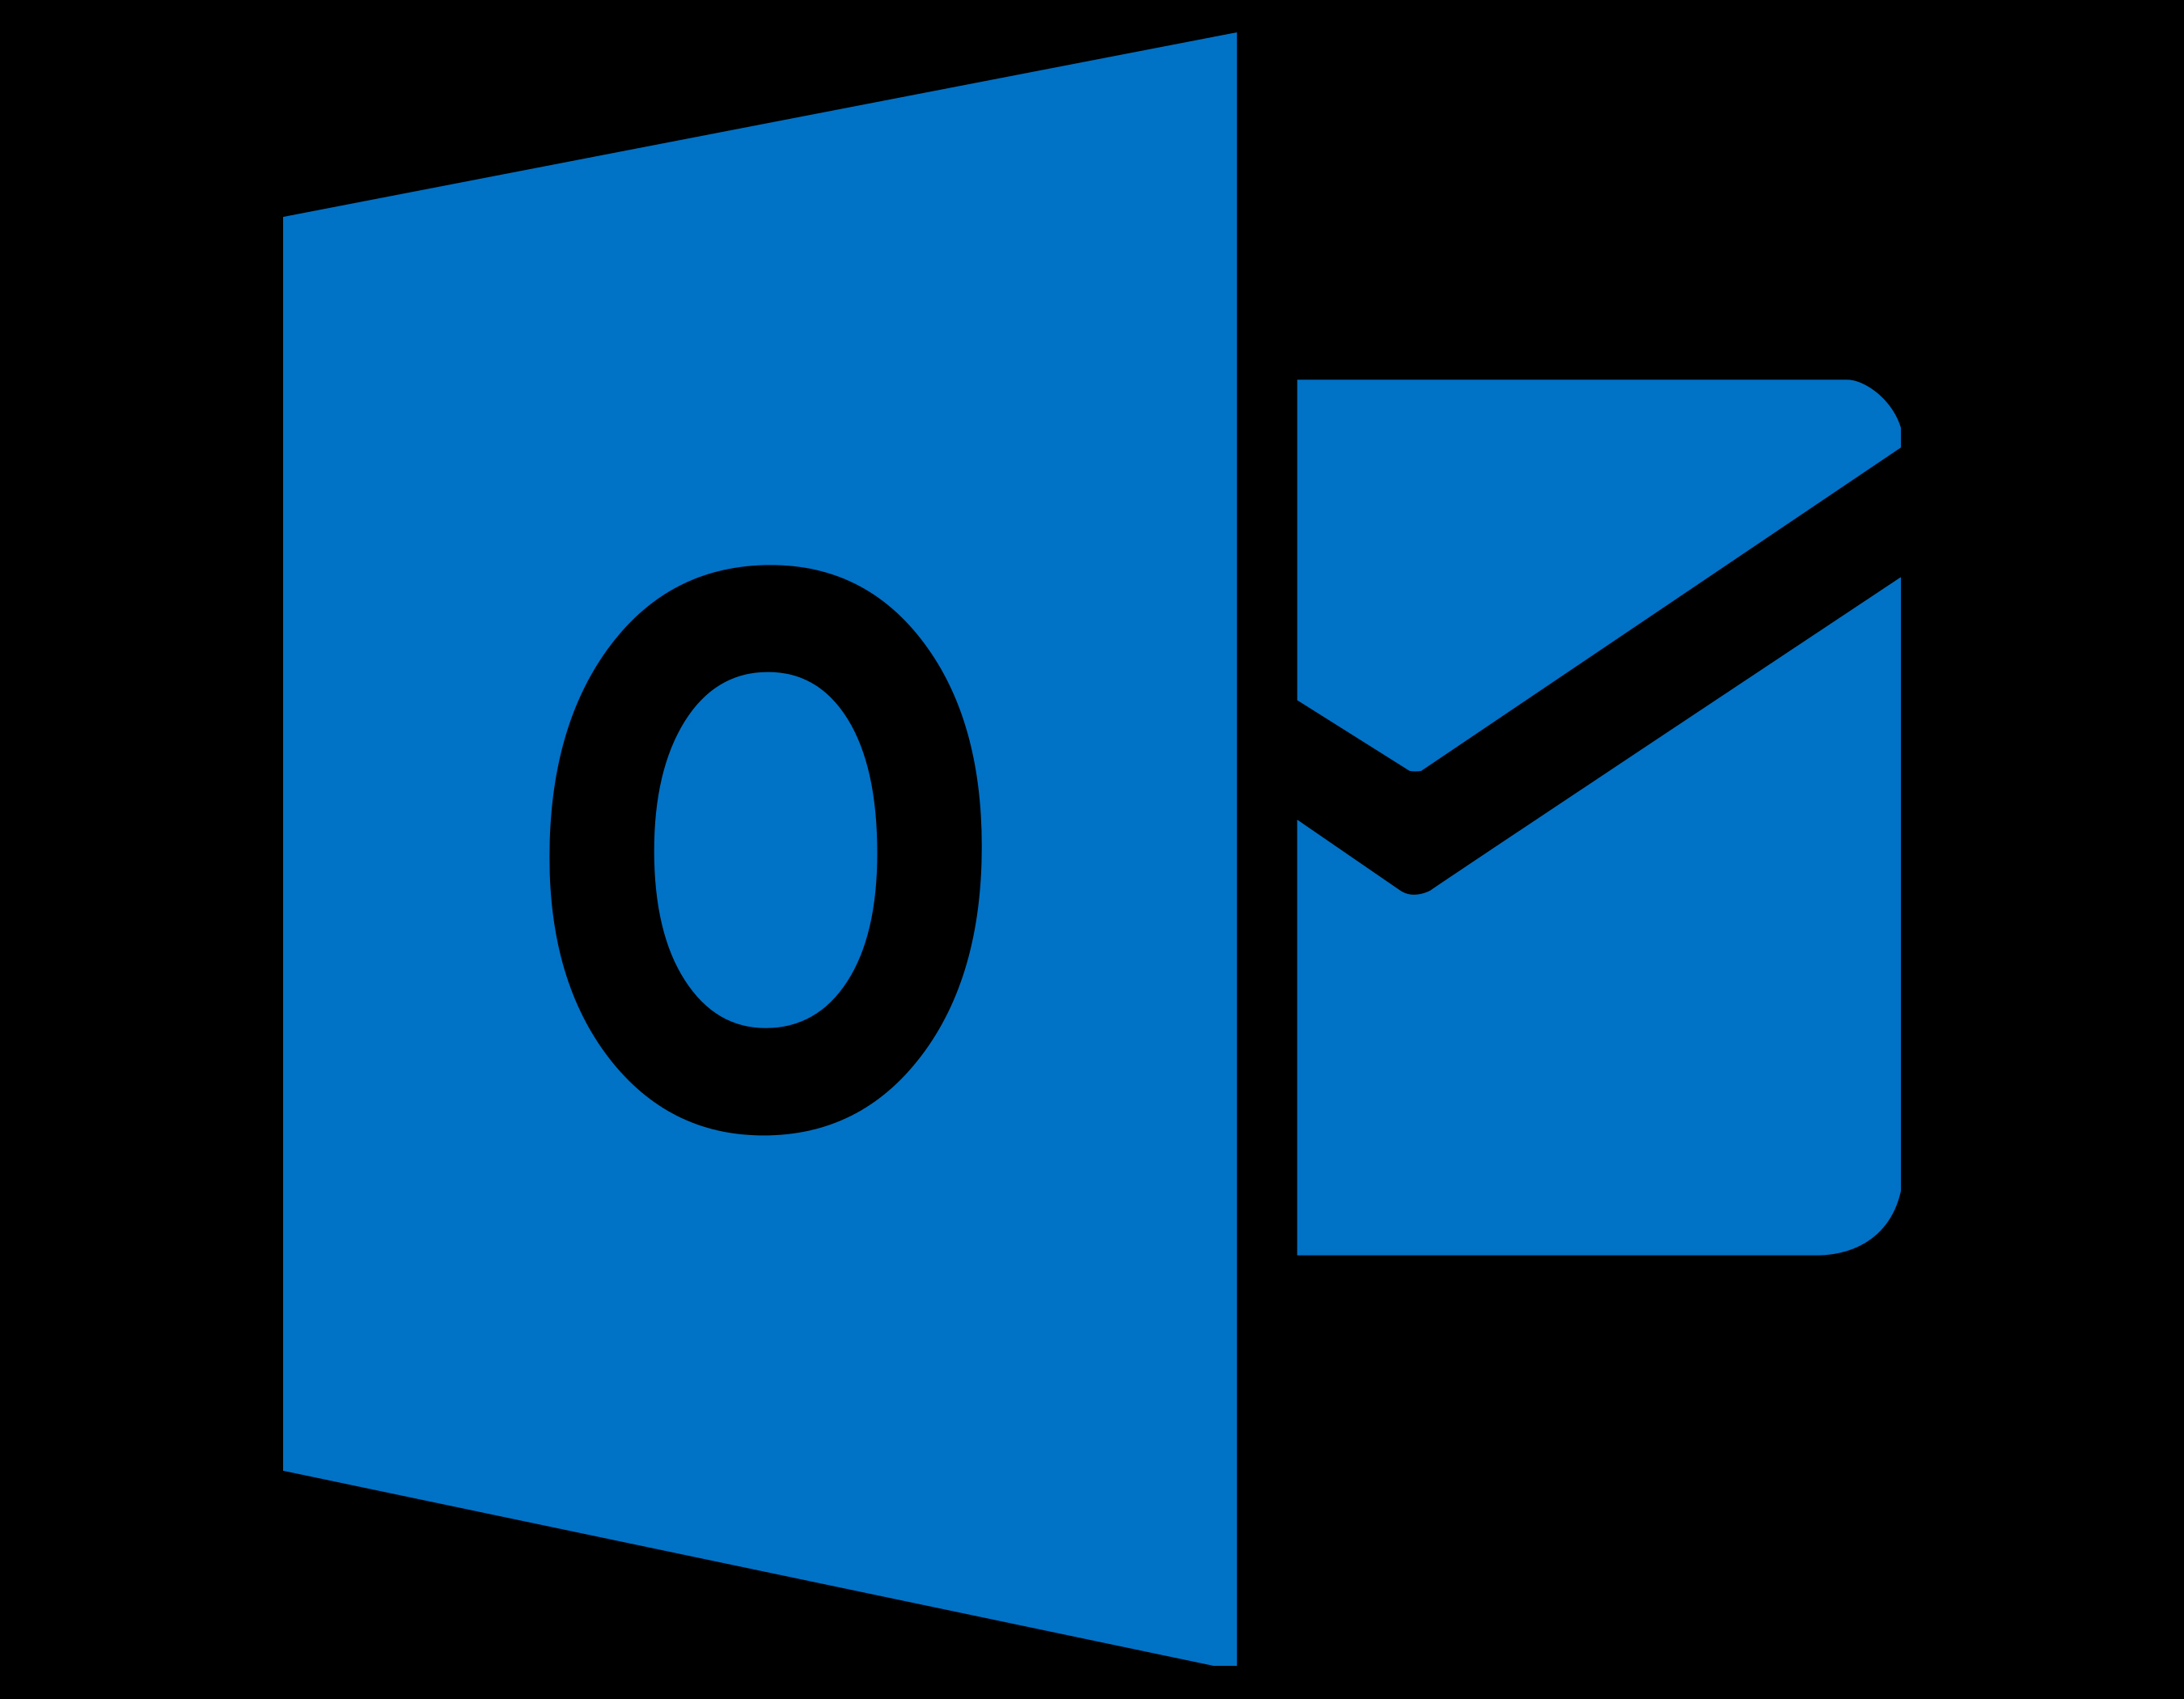 microsoft logo microsoft symbol meaning history and